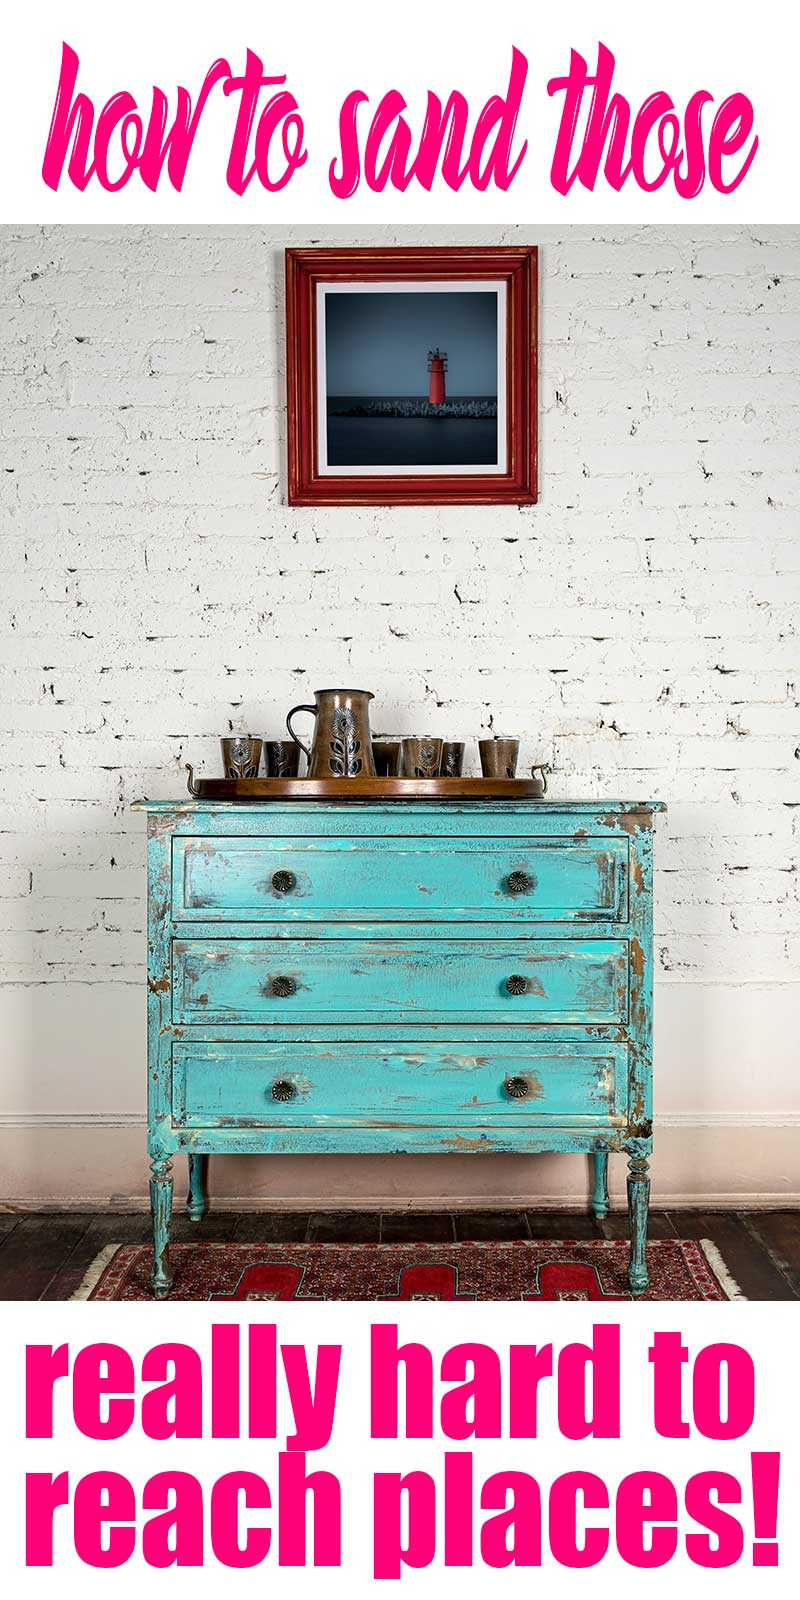 teal dresser with graphic text that says how to sand those really hard to reach places